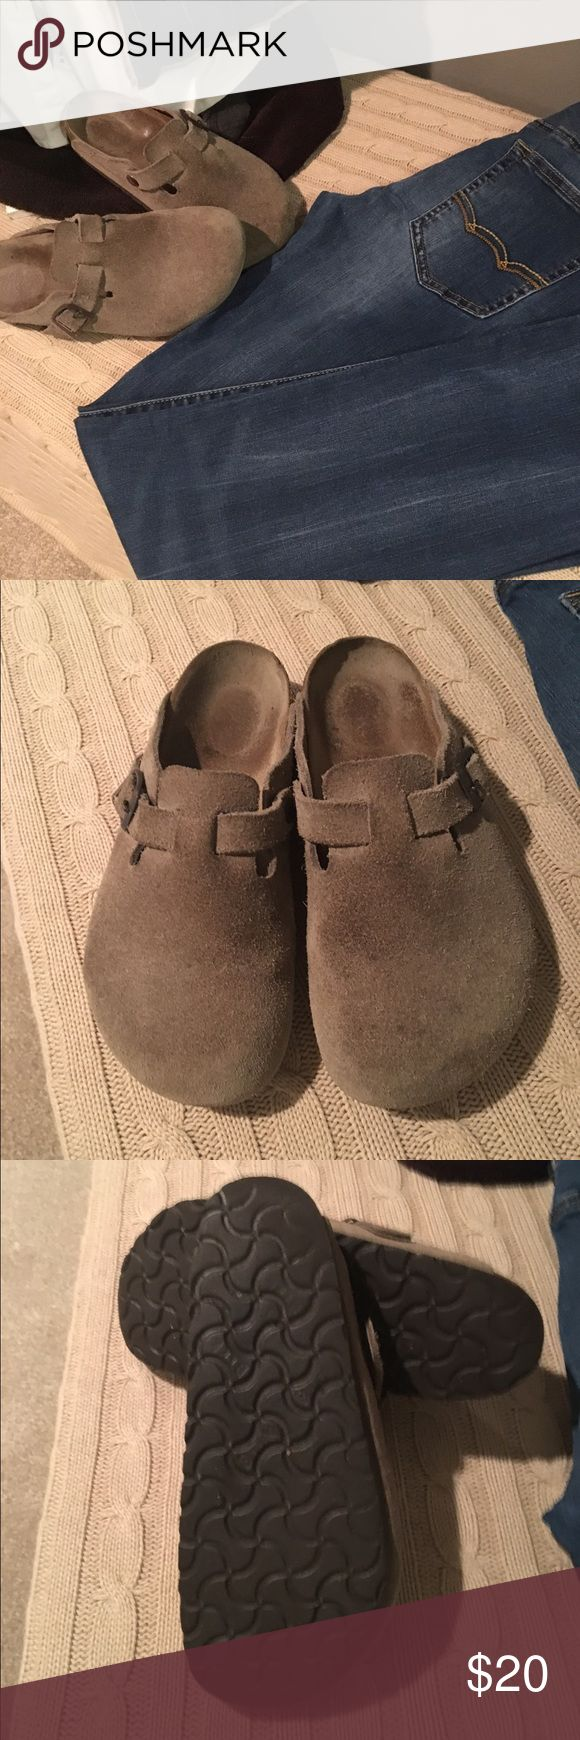 """Birkenstock Mules 💯 These  are in used condition. Size 6 taupe gray. Still life left in them. I thought I could wear them just to short. Measures 9.5"""" length 4.5"""" across top of foot width. I tried to photograph the spots on top not to bad but just not new condition. Very cute .. please ask any questions if interested. Price will reflect condition. Birkenstock Shoes Mules & Clogs"""